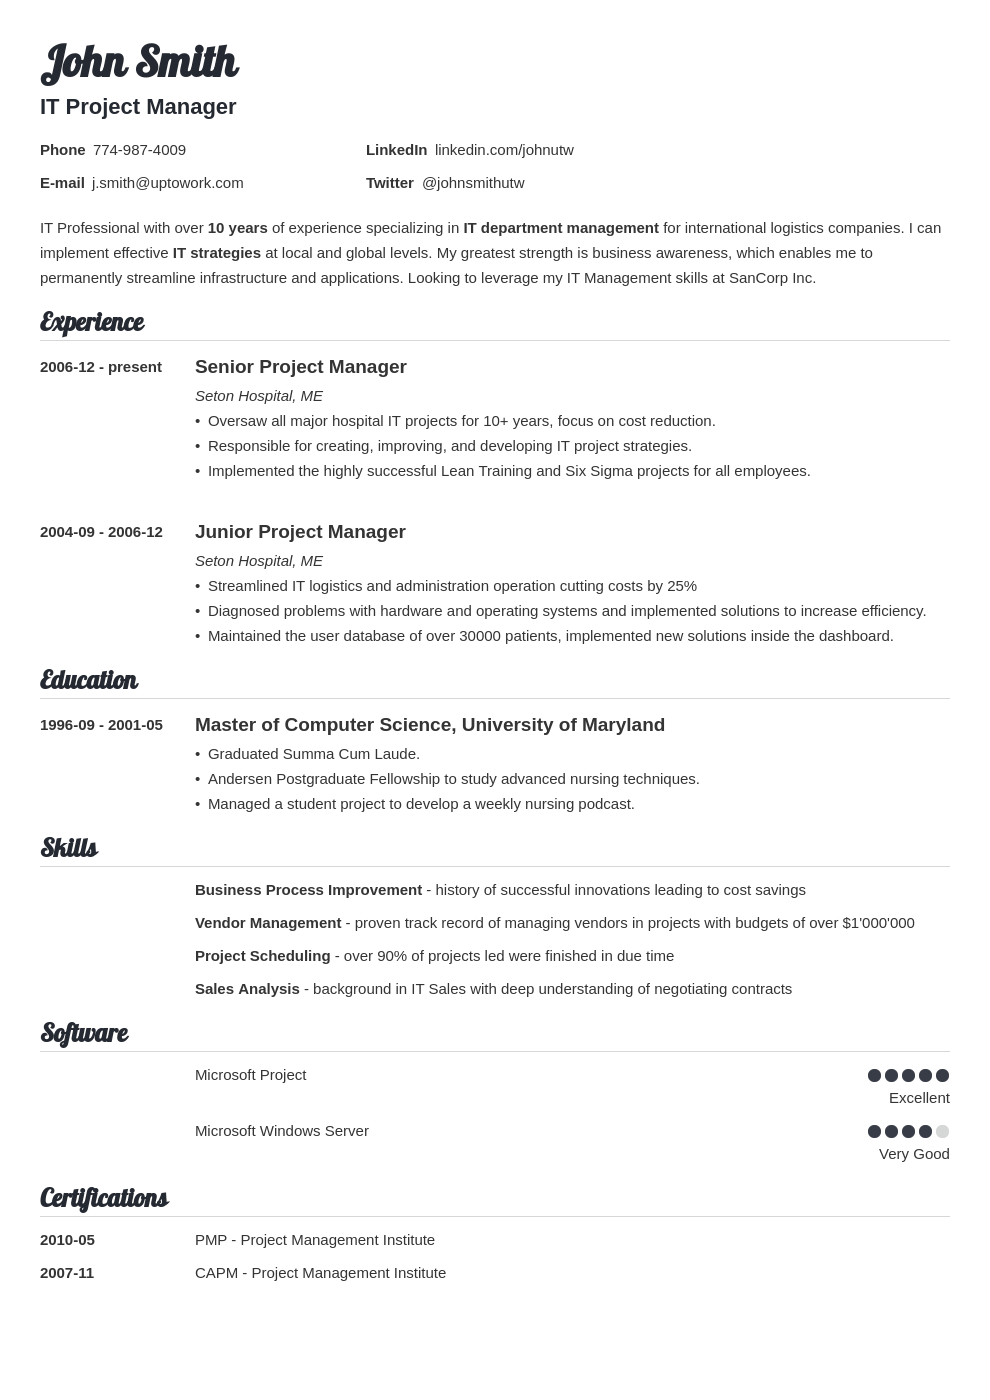 resume templeates - Templates Of Resumes